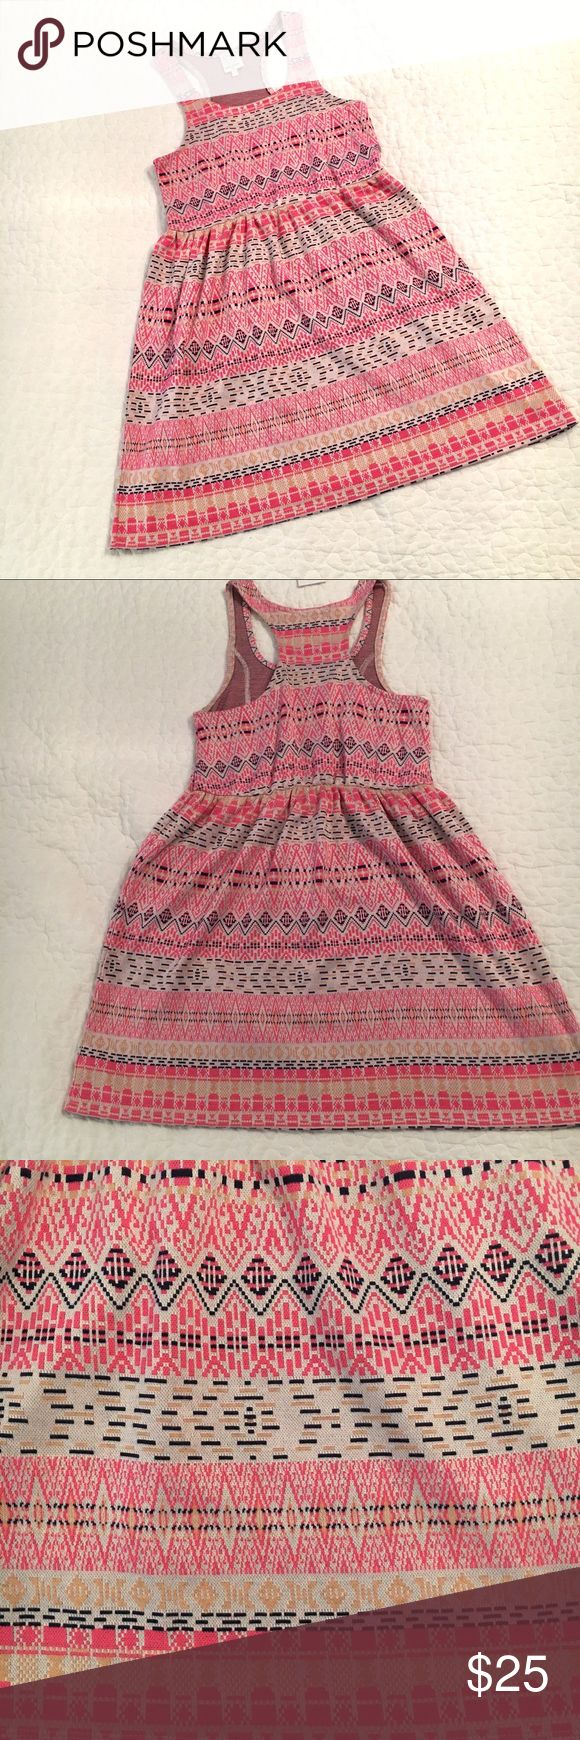 NWT Ella Moss Girls Coral Pink Dress Size 14 NWT Girls Ella Moss Dress Size 14.  Beautiful colors, chic design.  62% Cotton 38% polyester.  Wear now with tights/boots and a jacket or layer with a shirt under.  Wear later with Ballet Flats or sandals. Ella Moss Dresses